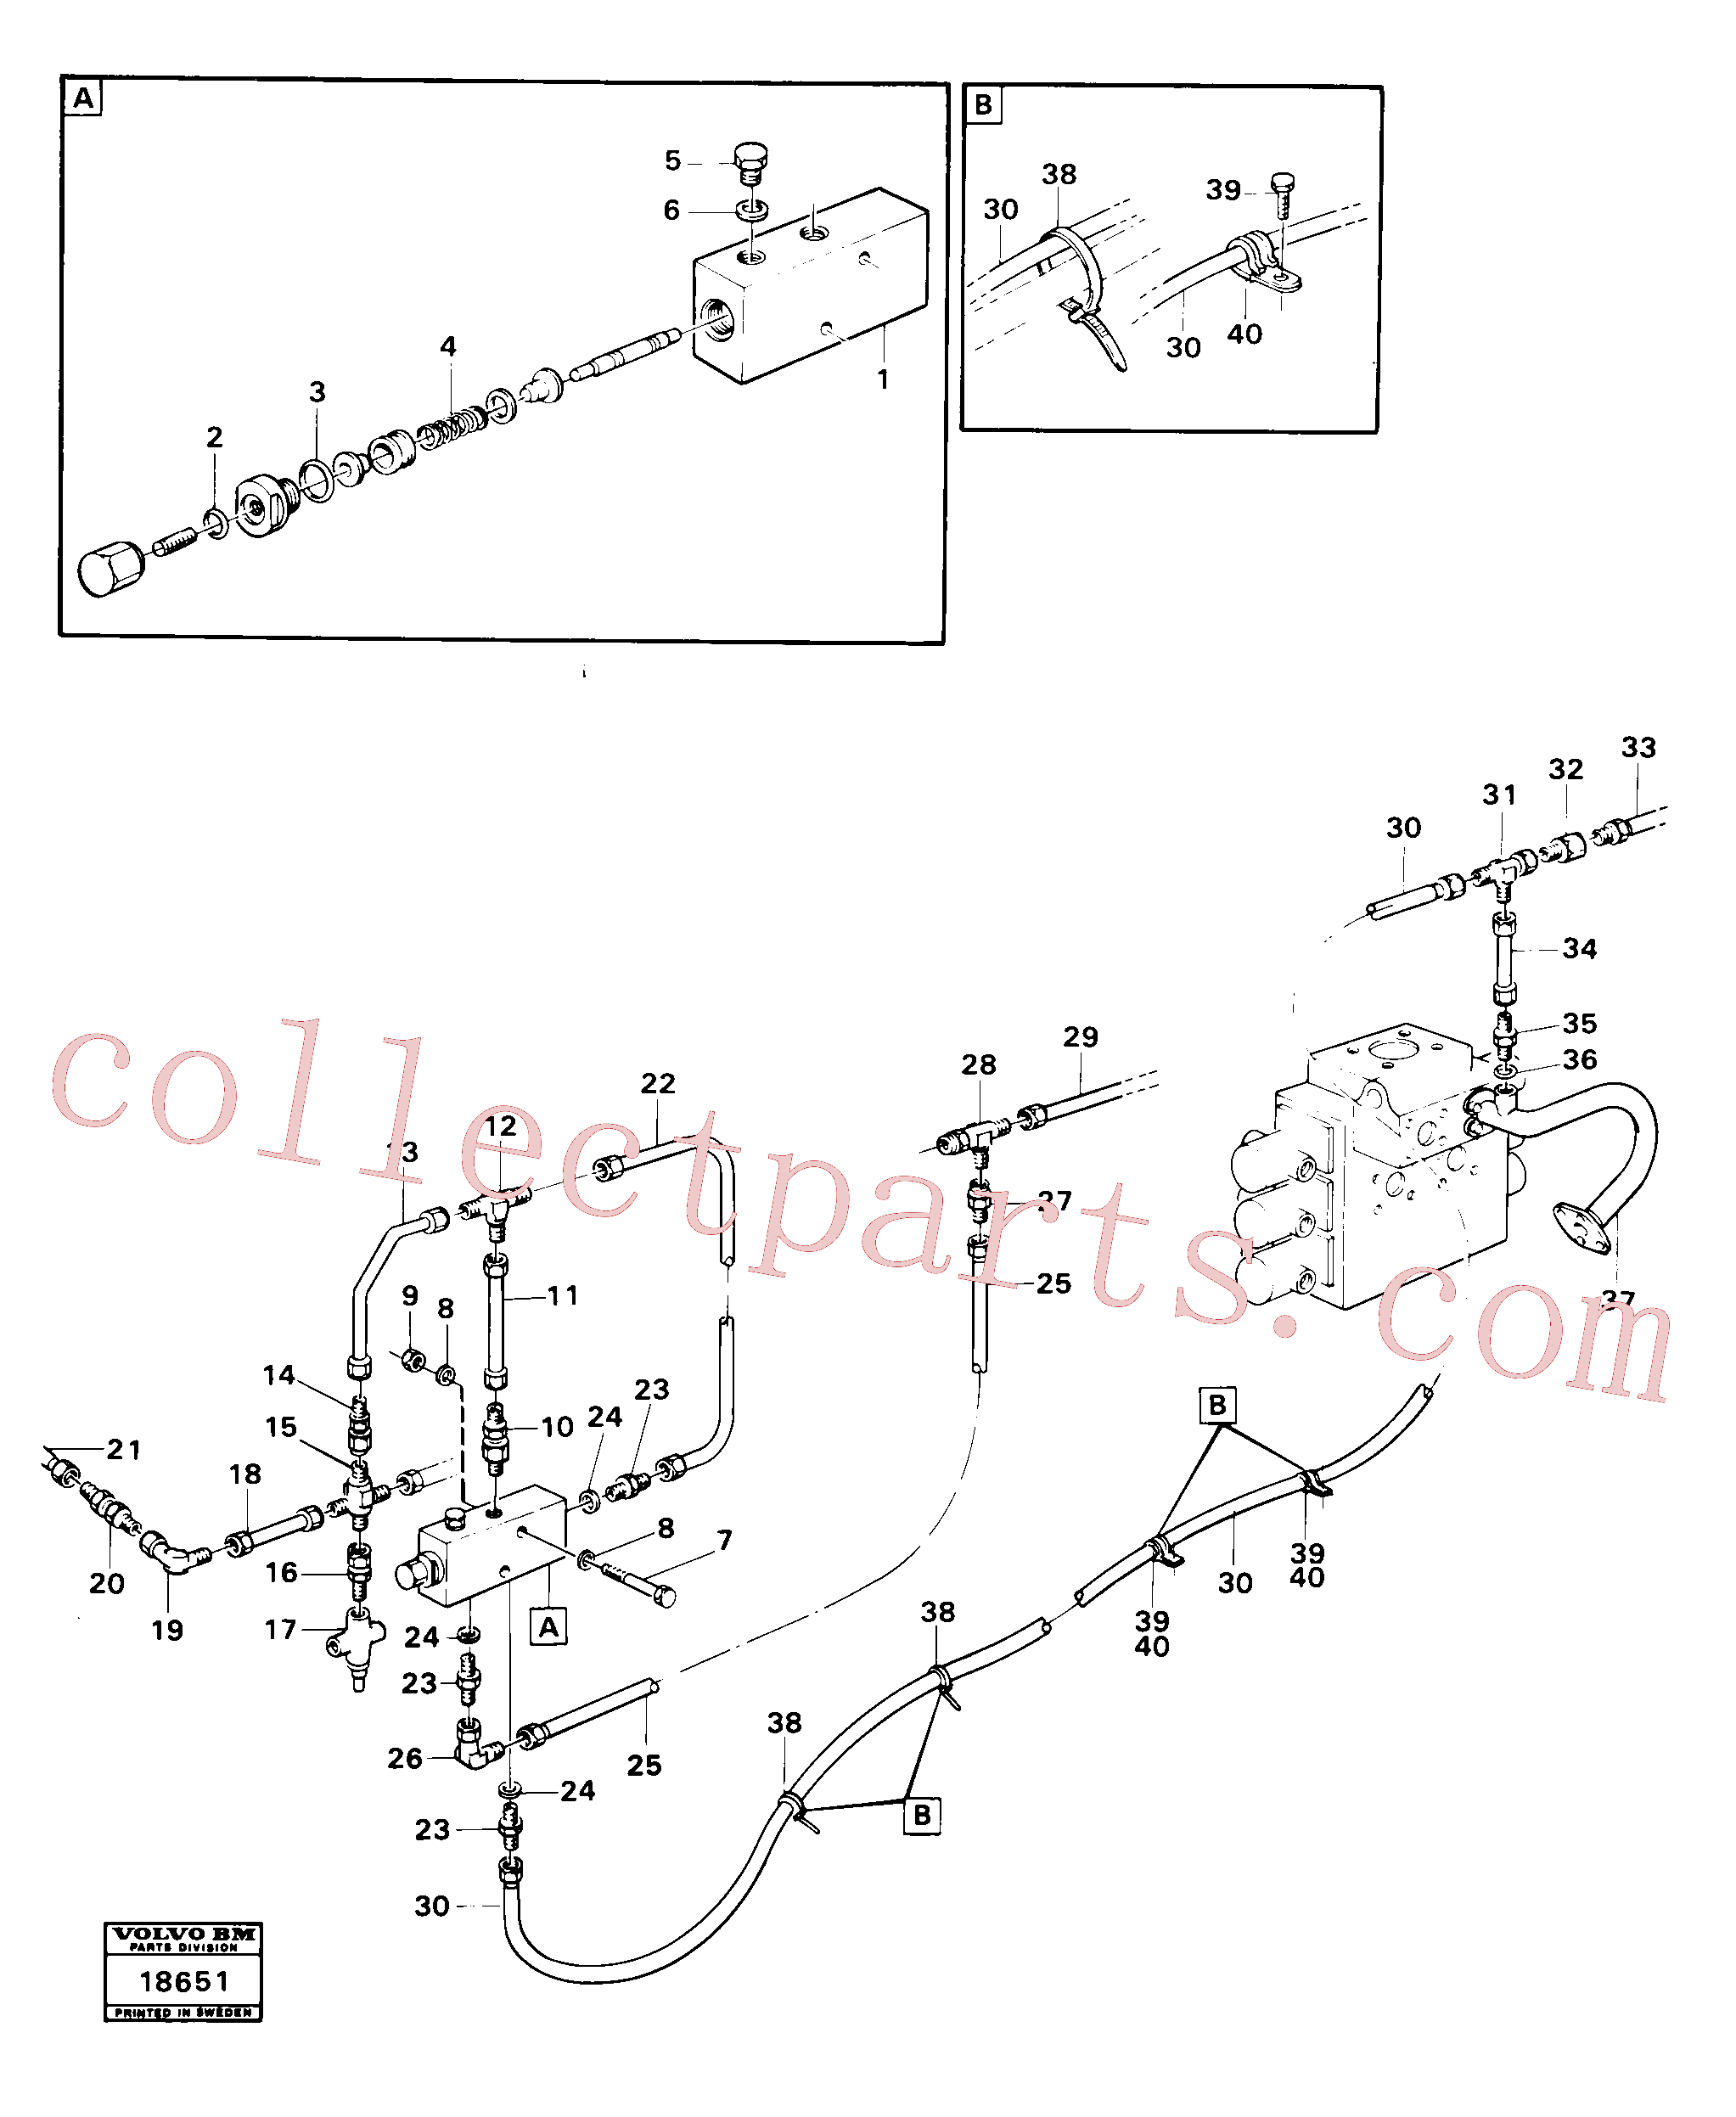 VOE6213697 for Volvo Boom lowering system.(18651 assembly)